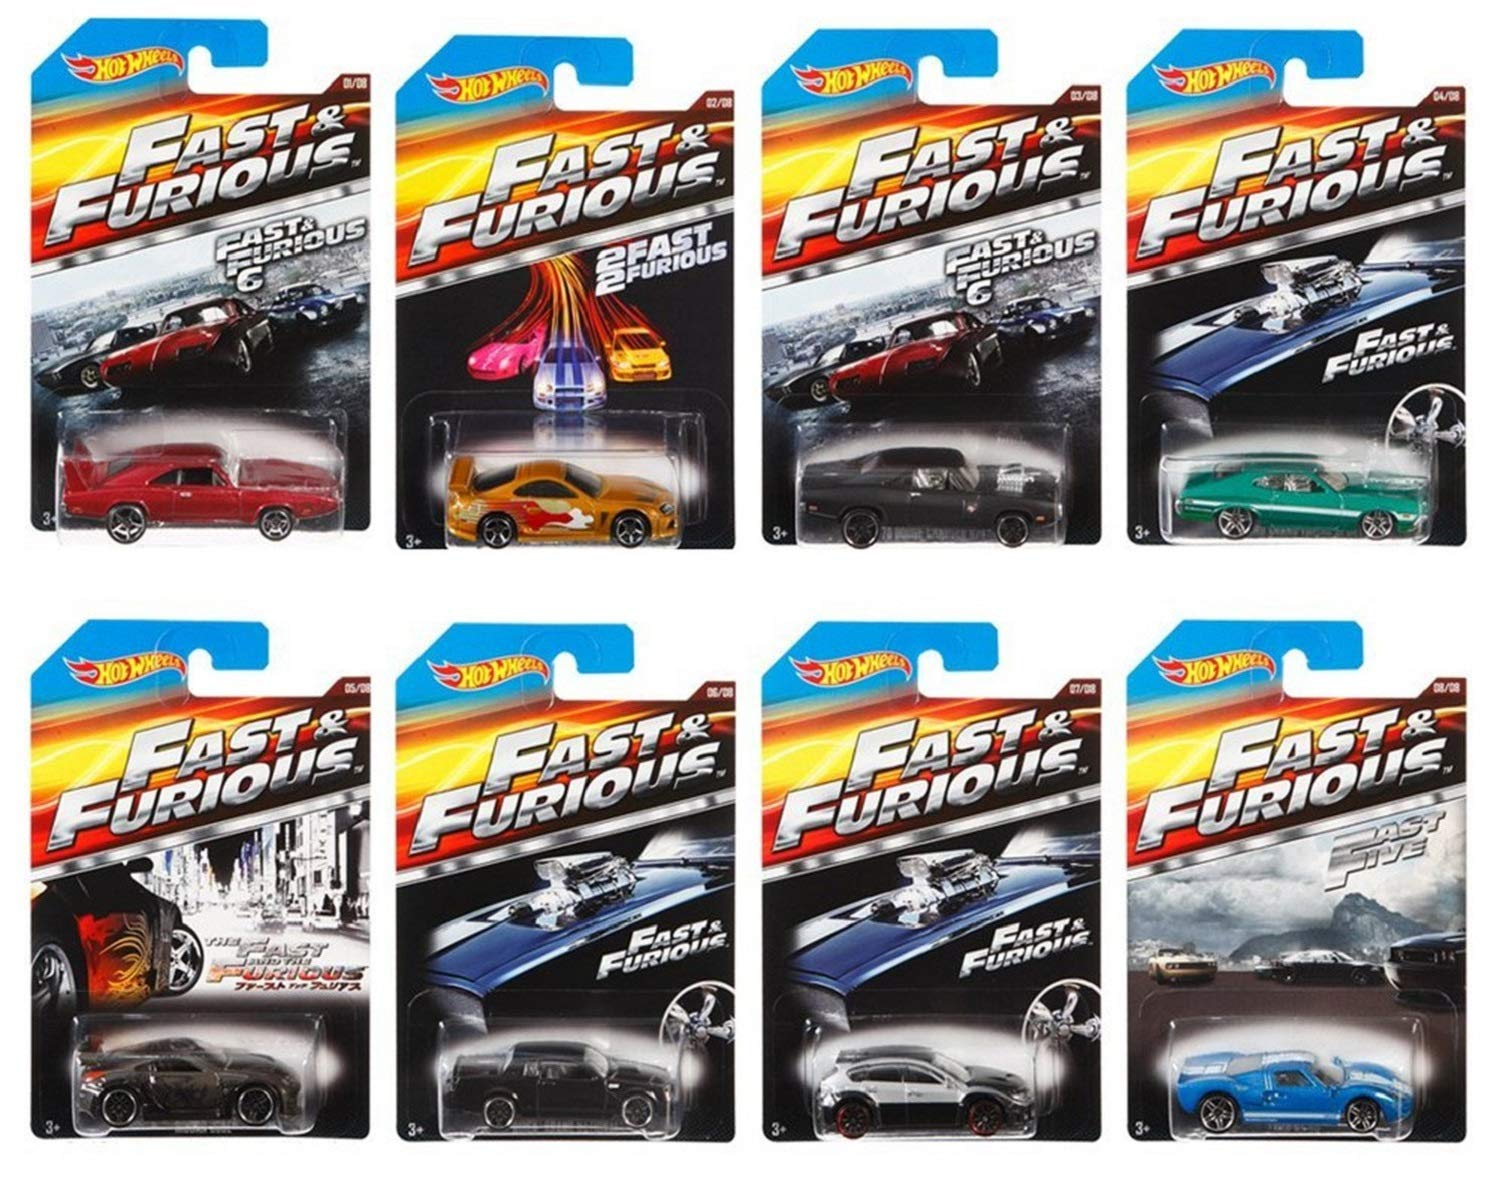 2015 Hot Wheels Fast & Furious - '69 Dodge Charger Daytona, 94 Toyota Supra, 70 Dodge Charger R/T, 72 Ford Grand Torino Sport, Nissan 350Z, Buick Grand National, Subaru, Ford Complete Set of 8